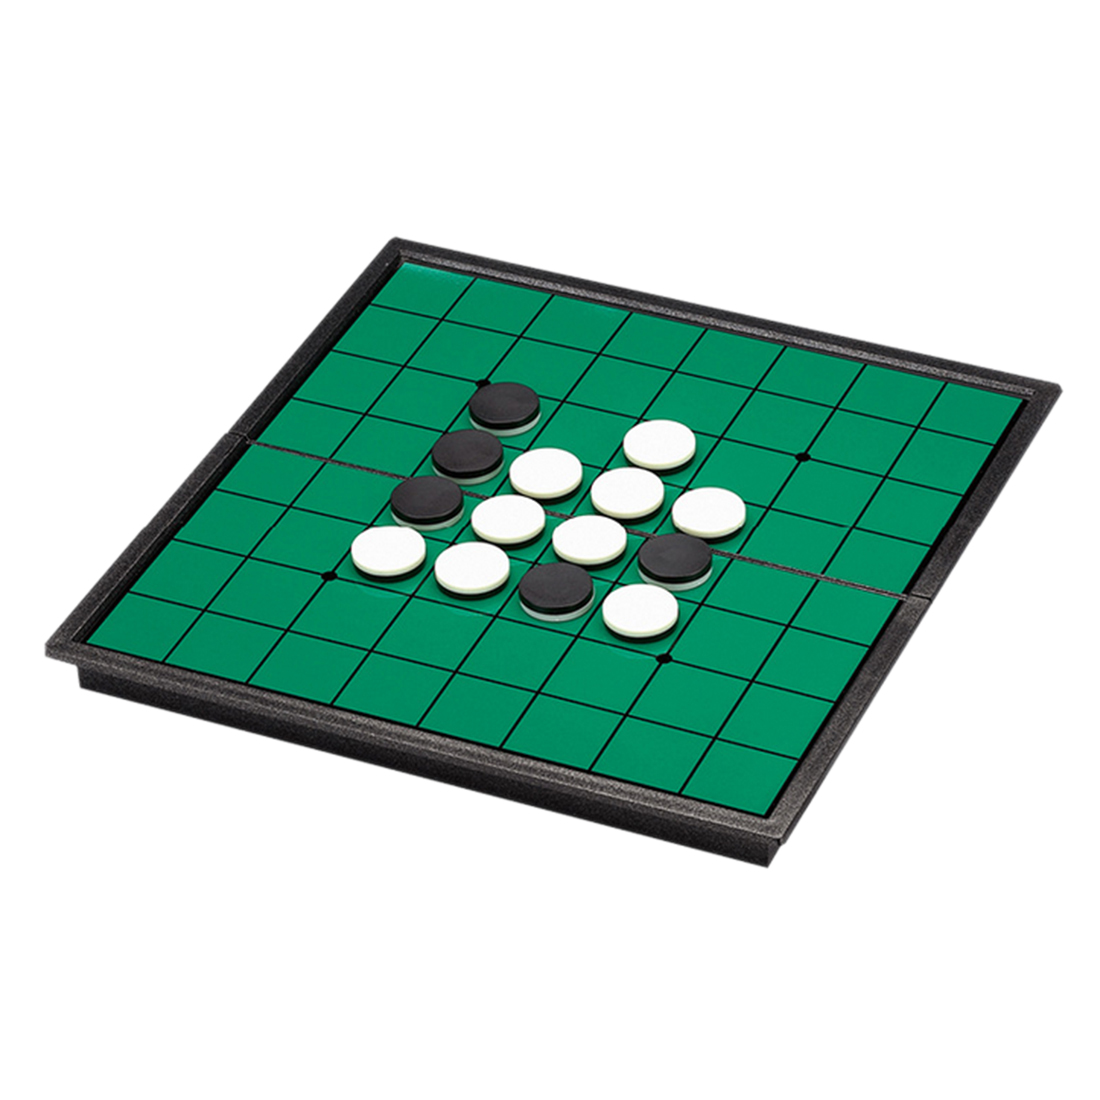 Magnetic Portable flip chess and Folding Reversi Othello Board Chess Standard Educational parent-children Board Game Toy